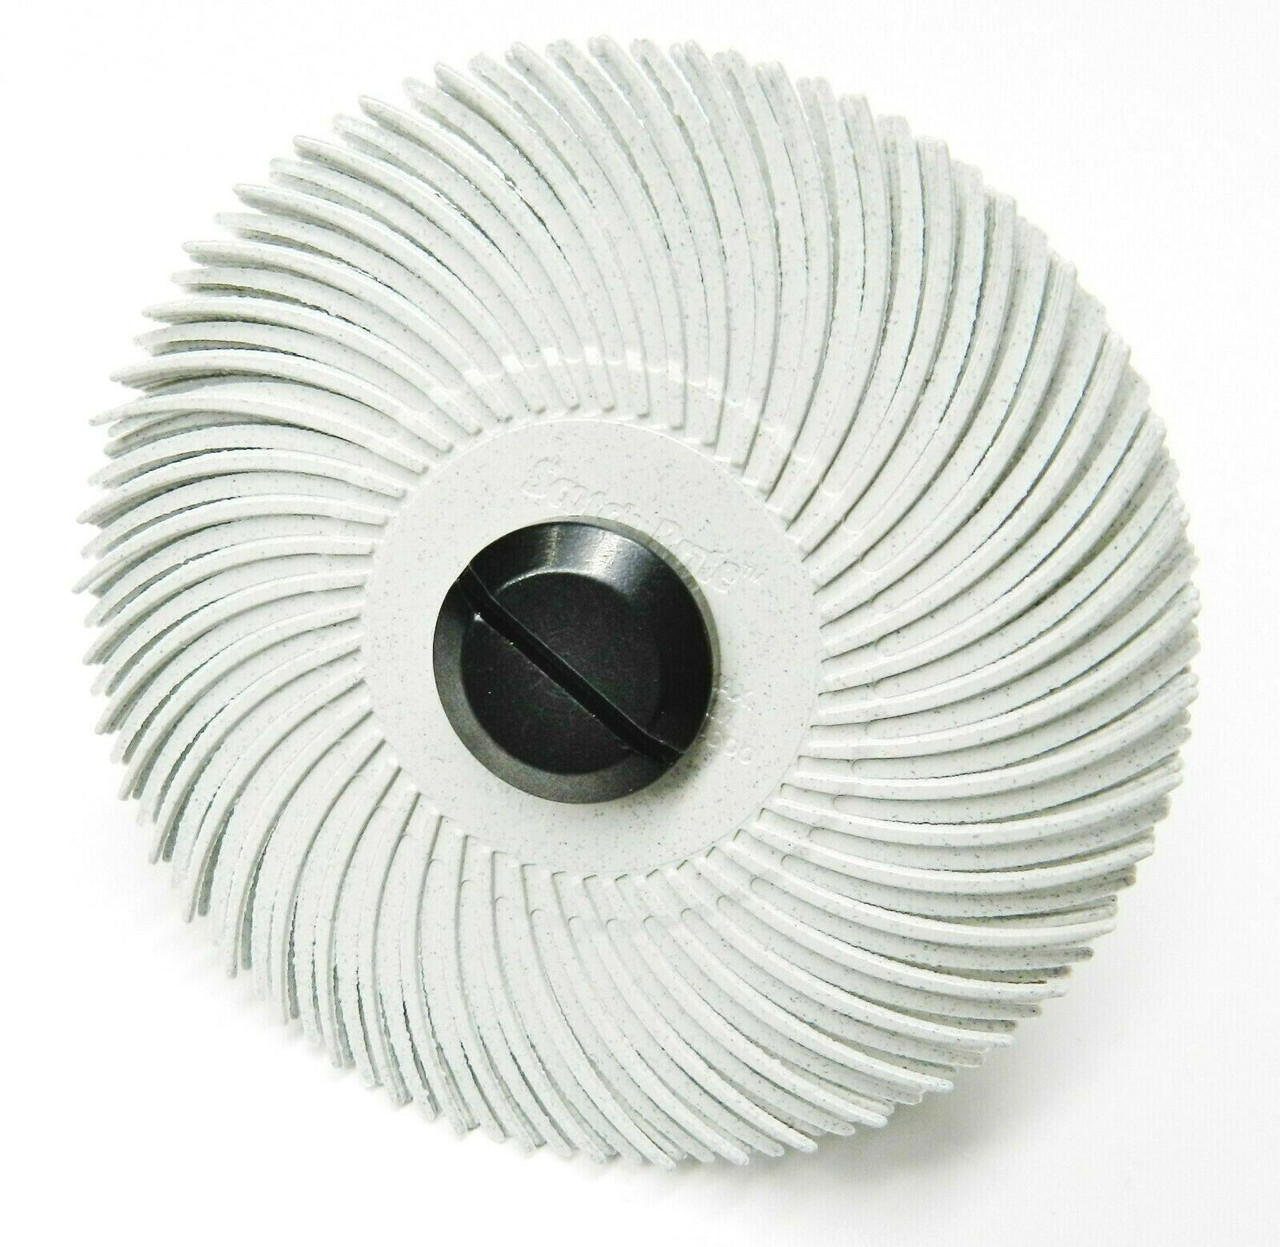 3M Radial Bristle Disc 3 120 Grit White with 1//4 Mandrel 6 Brushes and Arbor Set by Jets